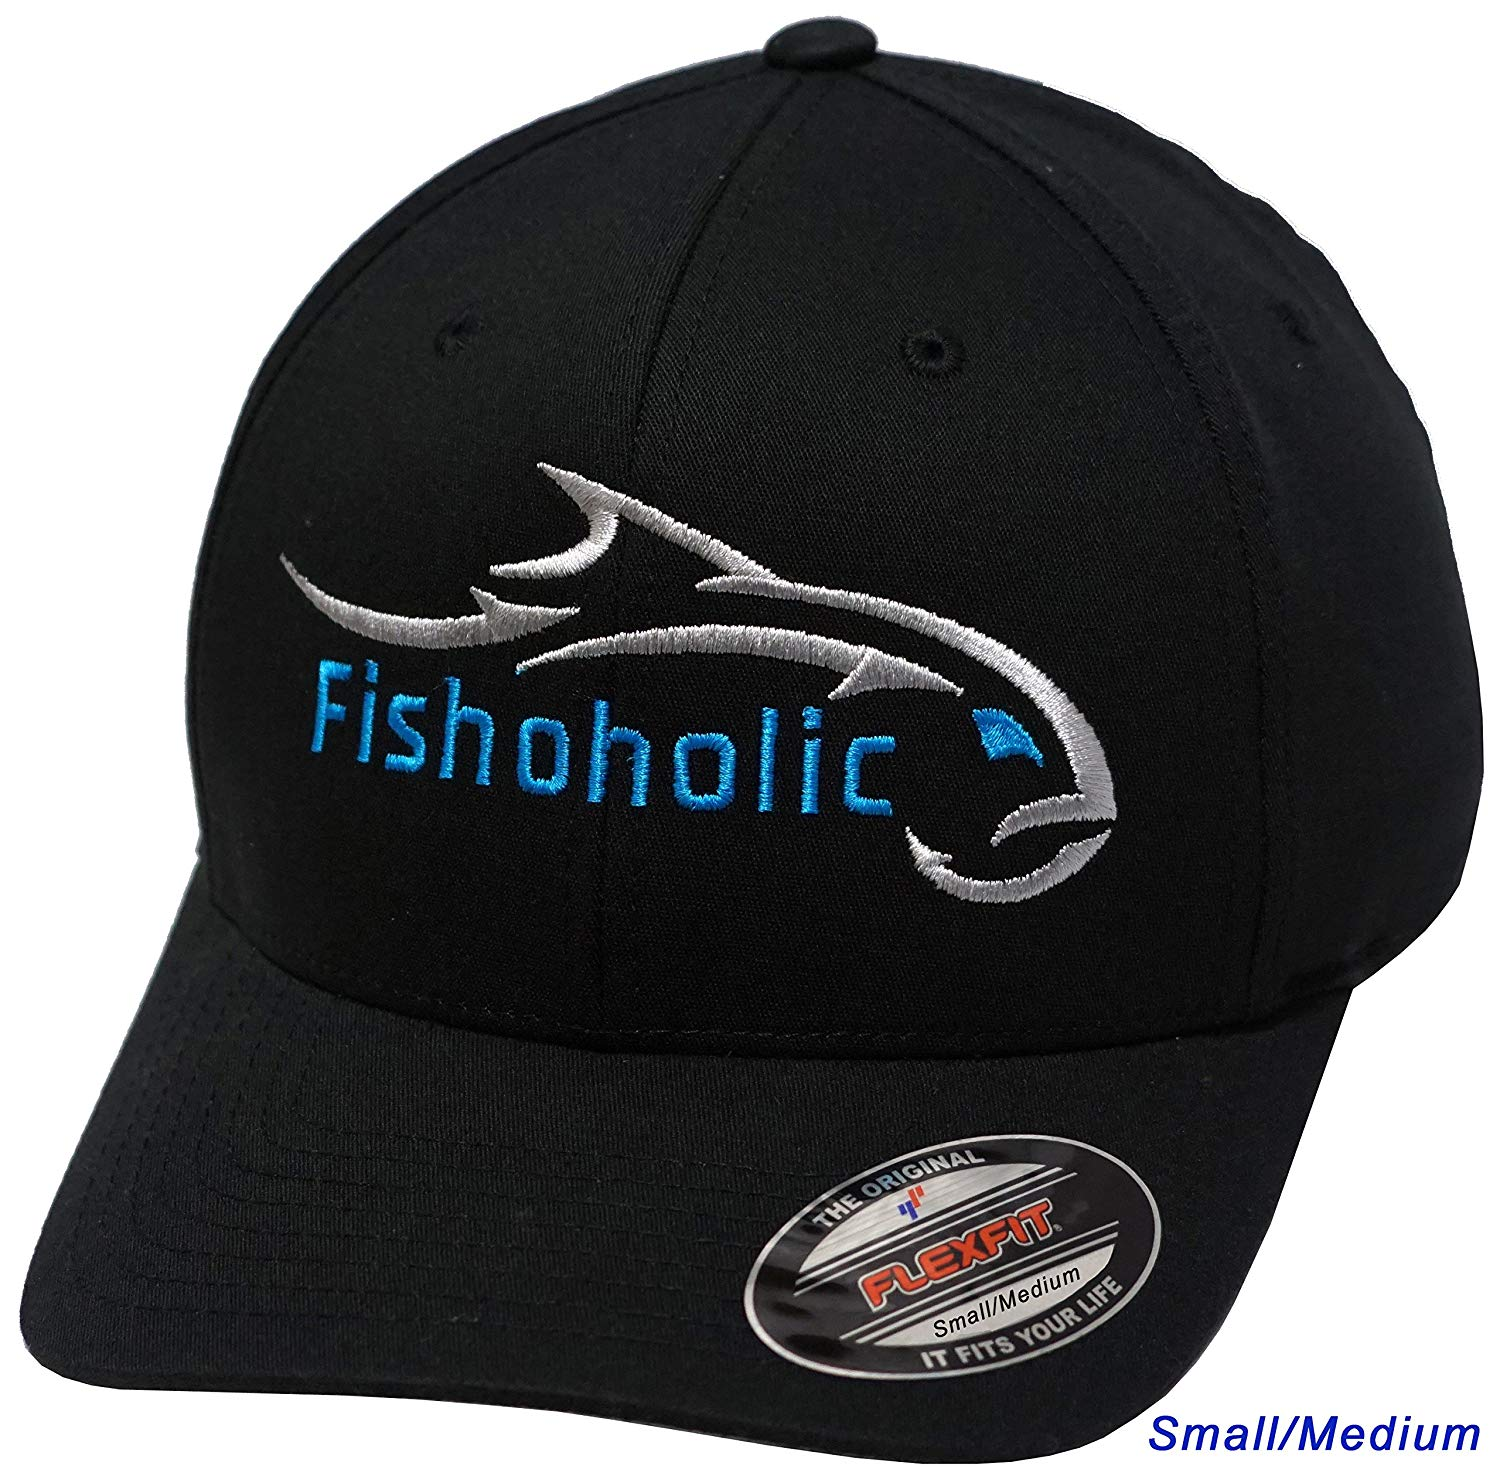 Fishoholic Flexfit Black Baseball Fishing Hat w' Silver & BLUE Embroidery Front & Back. Small/Medium. Great Gift. Fishaholic USPTO Registered (R) Trademark. (FF-blk-SlvBLUE-S/M)